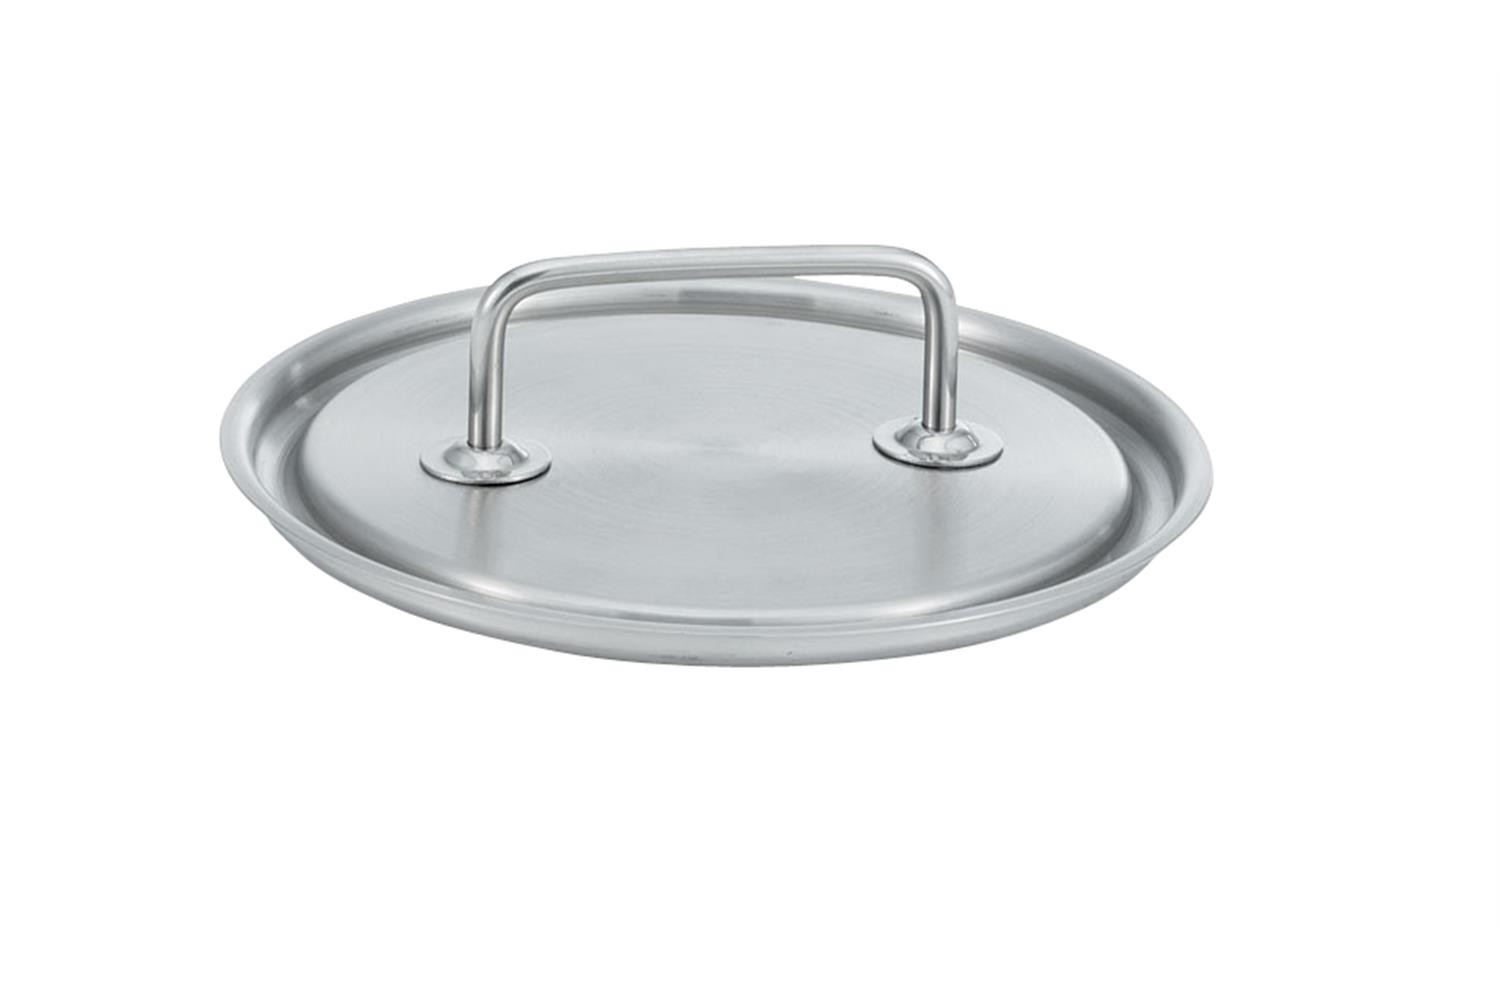 Vollrath 47772 Intrigue Stainless Steel Sauce Pan Cover 8-9/16""